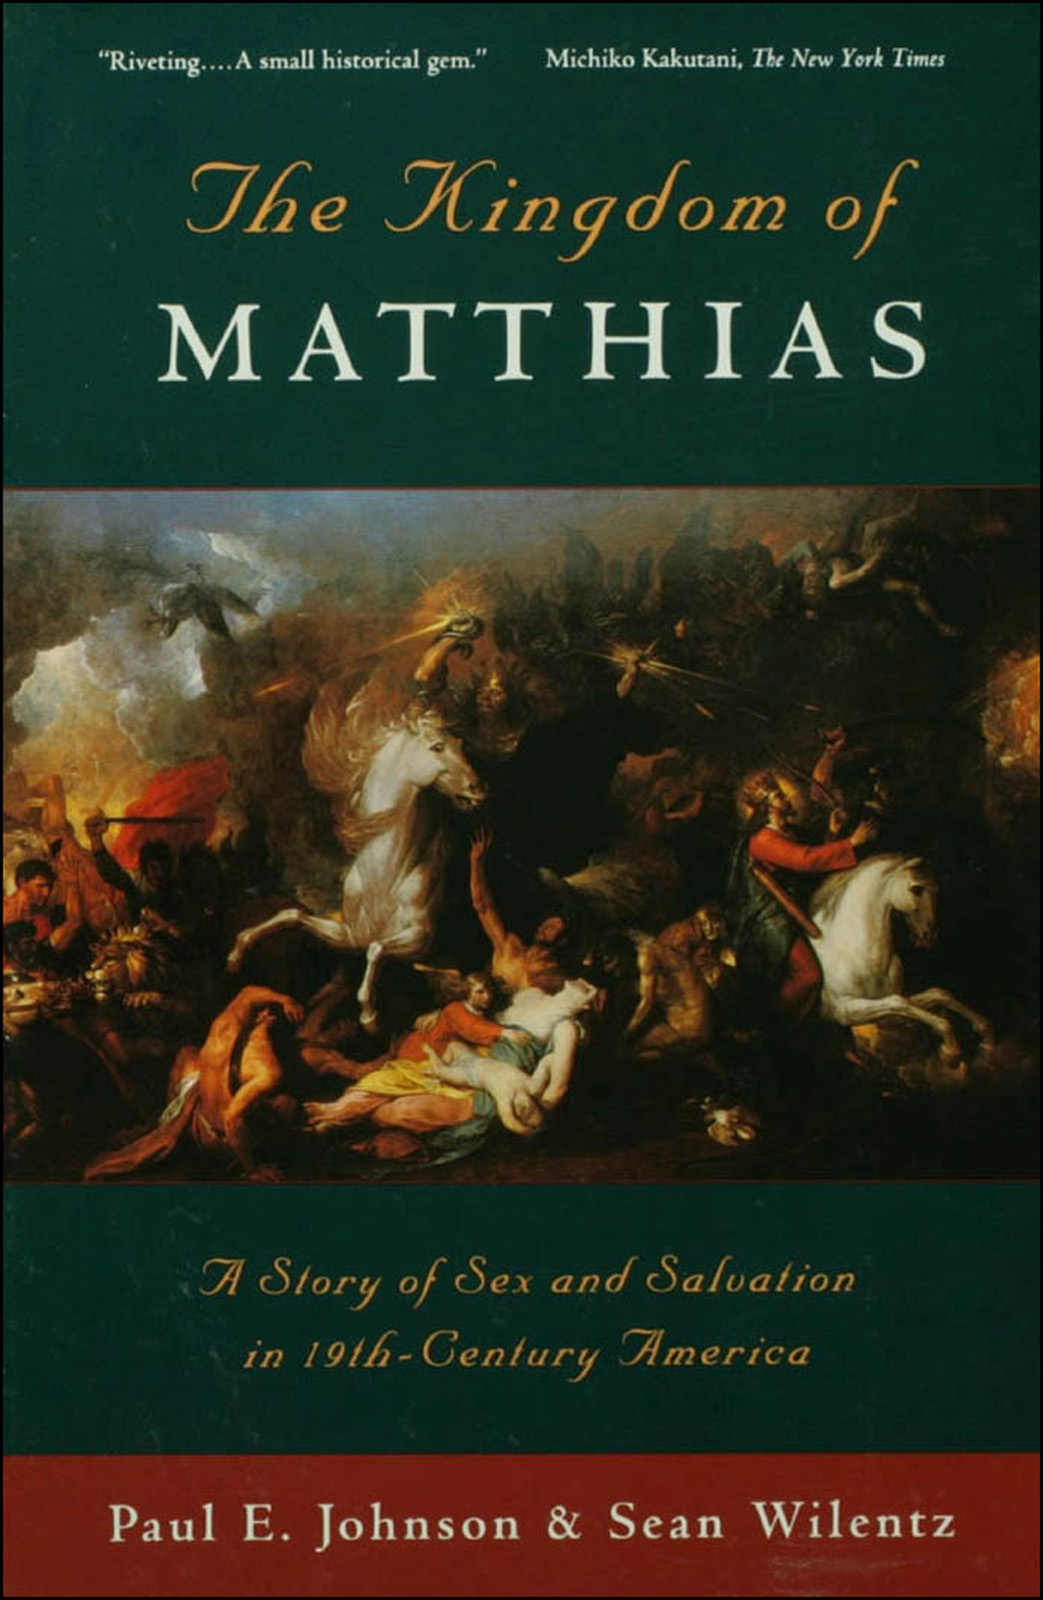 The Kingdom of Matthias:A Story of Sex and Salvation in 19th-Century America  By: Paul E. Johnson,Sean Wilentz